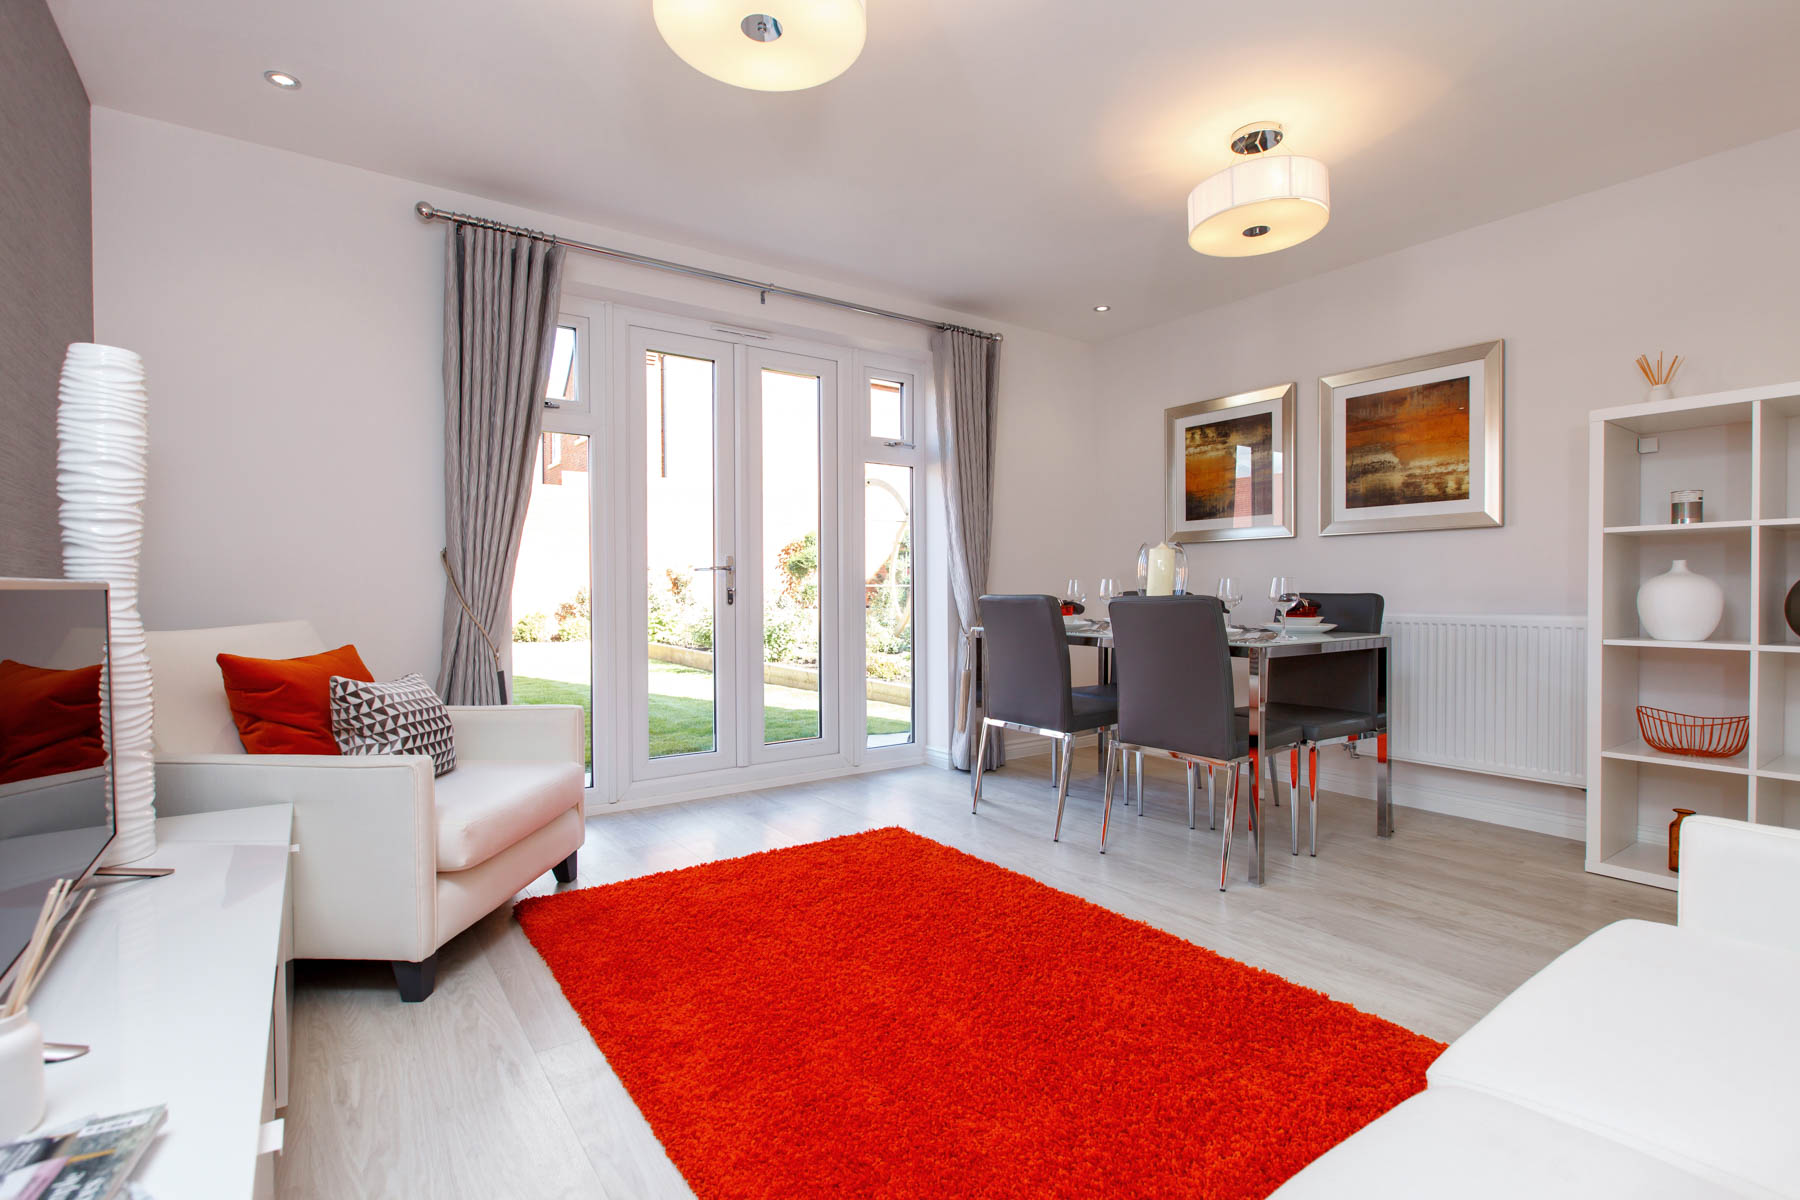 Taylor Wimpey Exeter - Cranbrook - Harton example living room 2